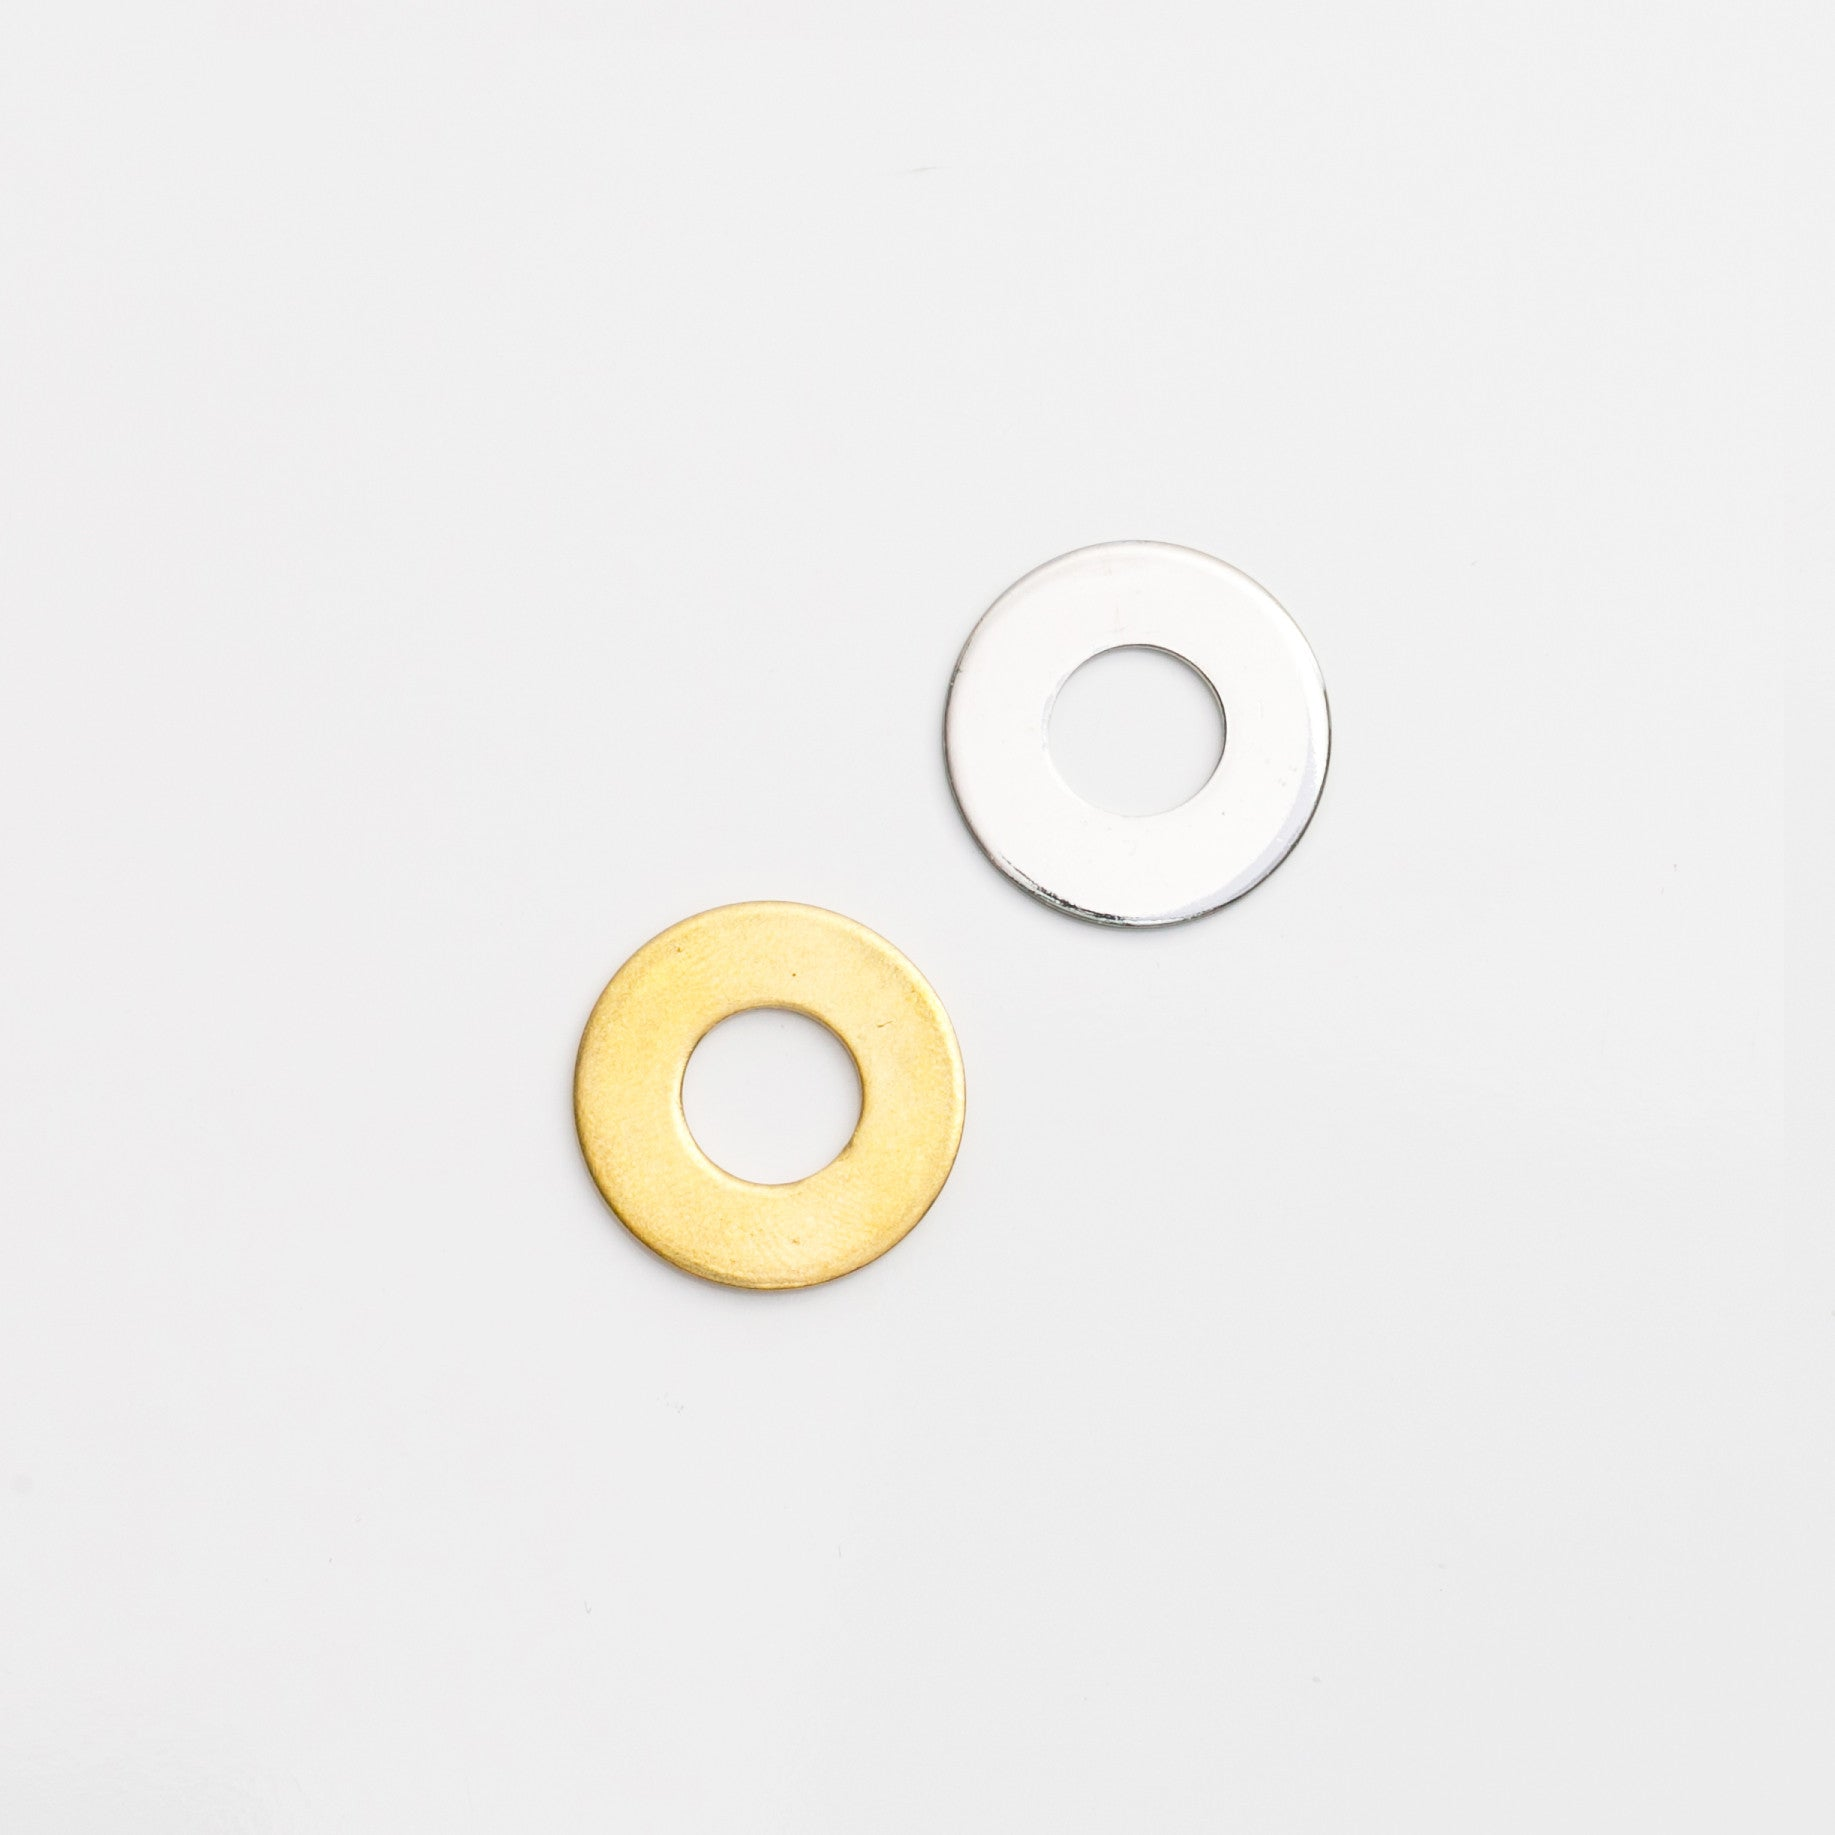 MyIntent Refill Tokens in Gold and Silver